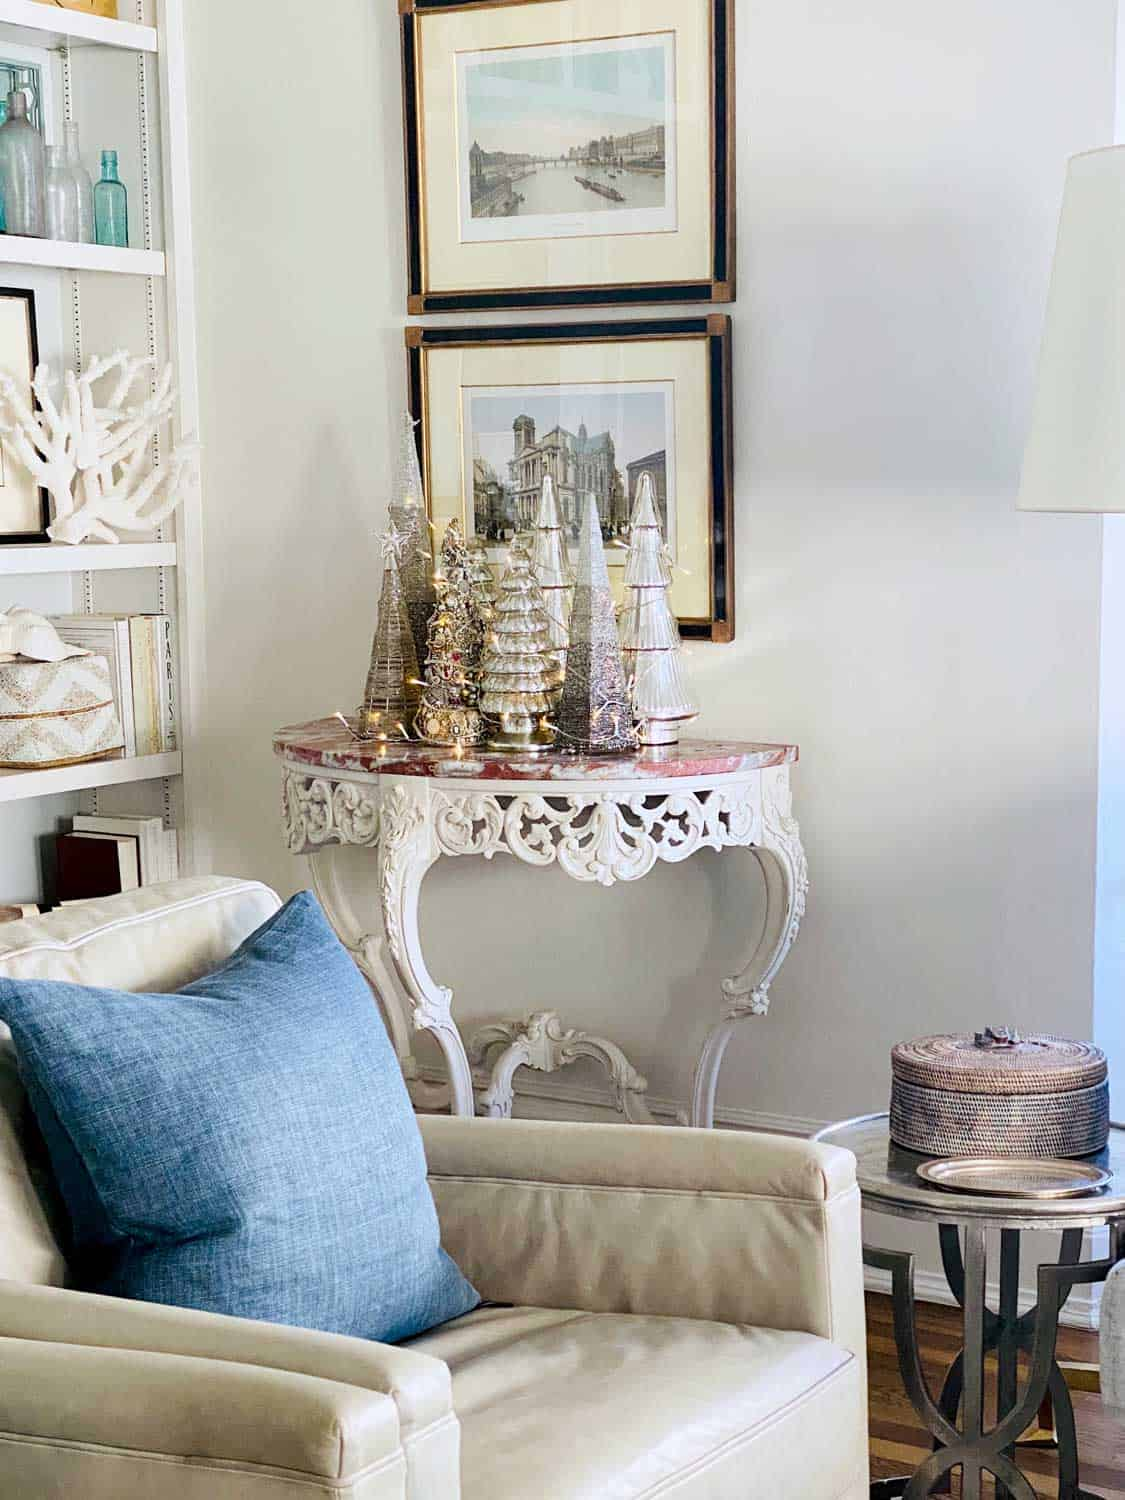 Mary Ann Pickett's Collection of Silver Christmas Trees